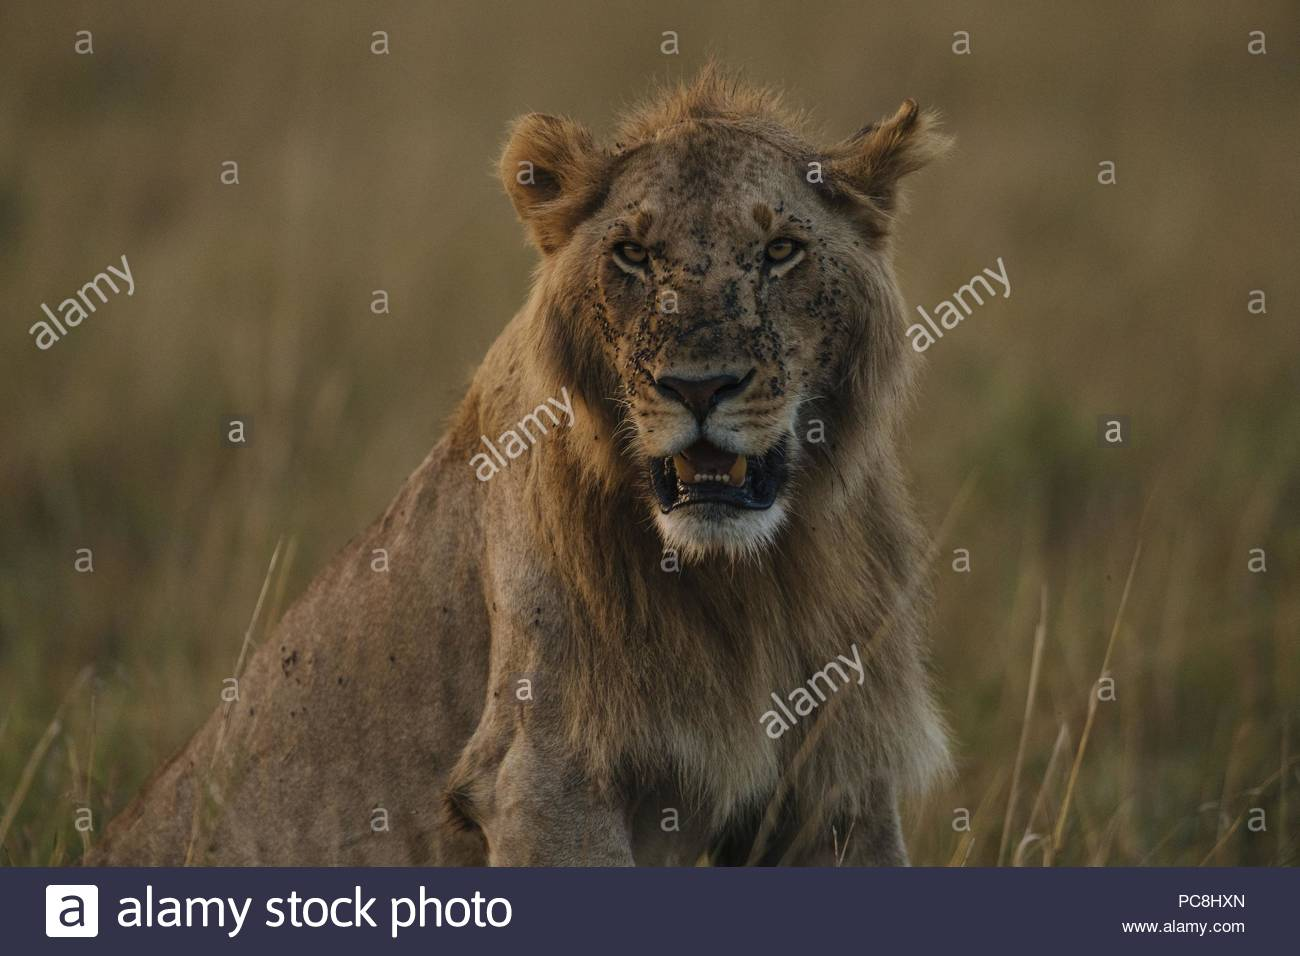 Portrait of a male lion, Panthera leo, resting in the dry grass. - Stock Image